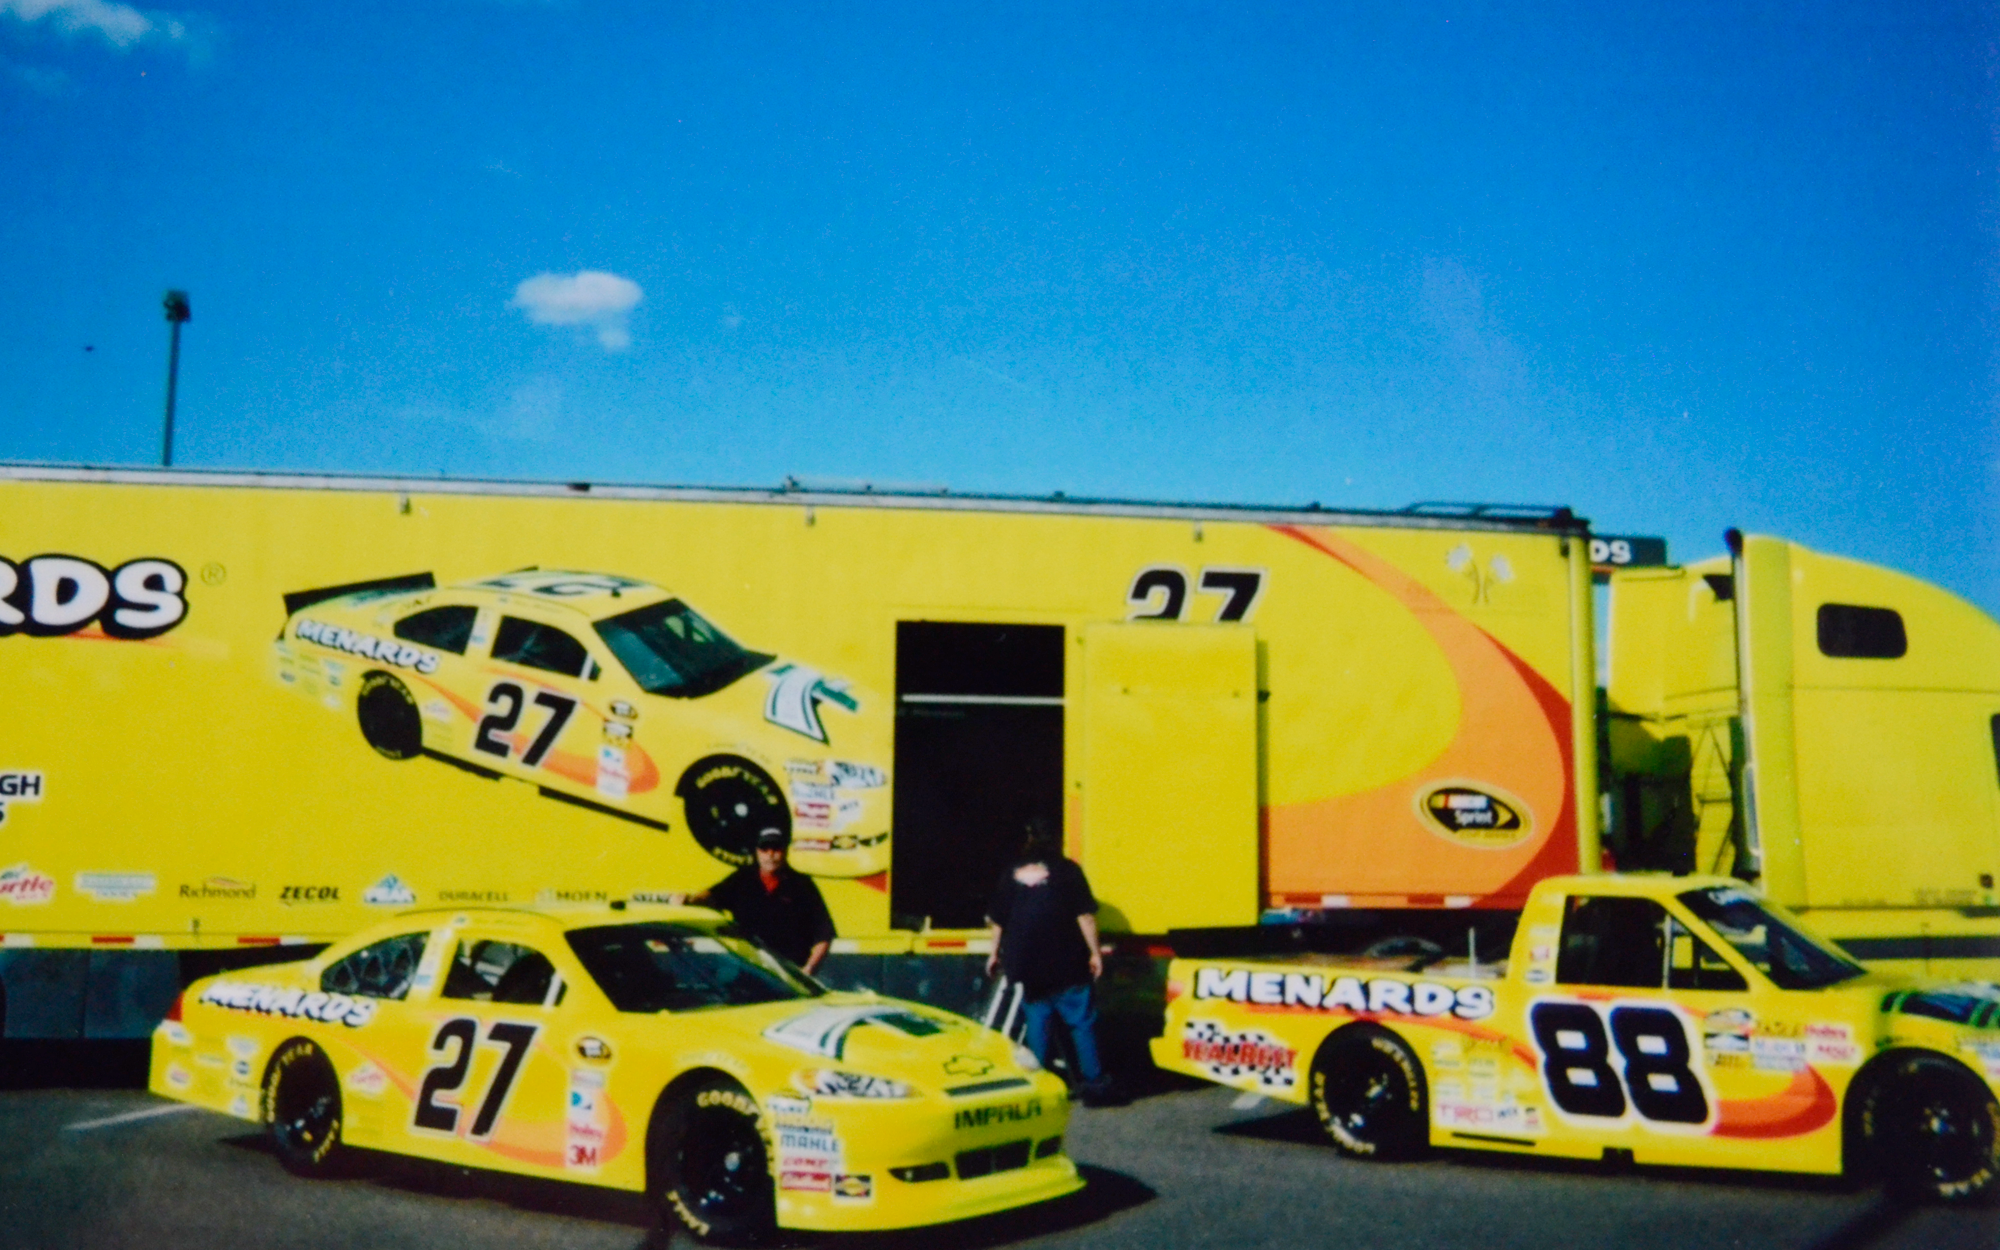 race car and race truck